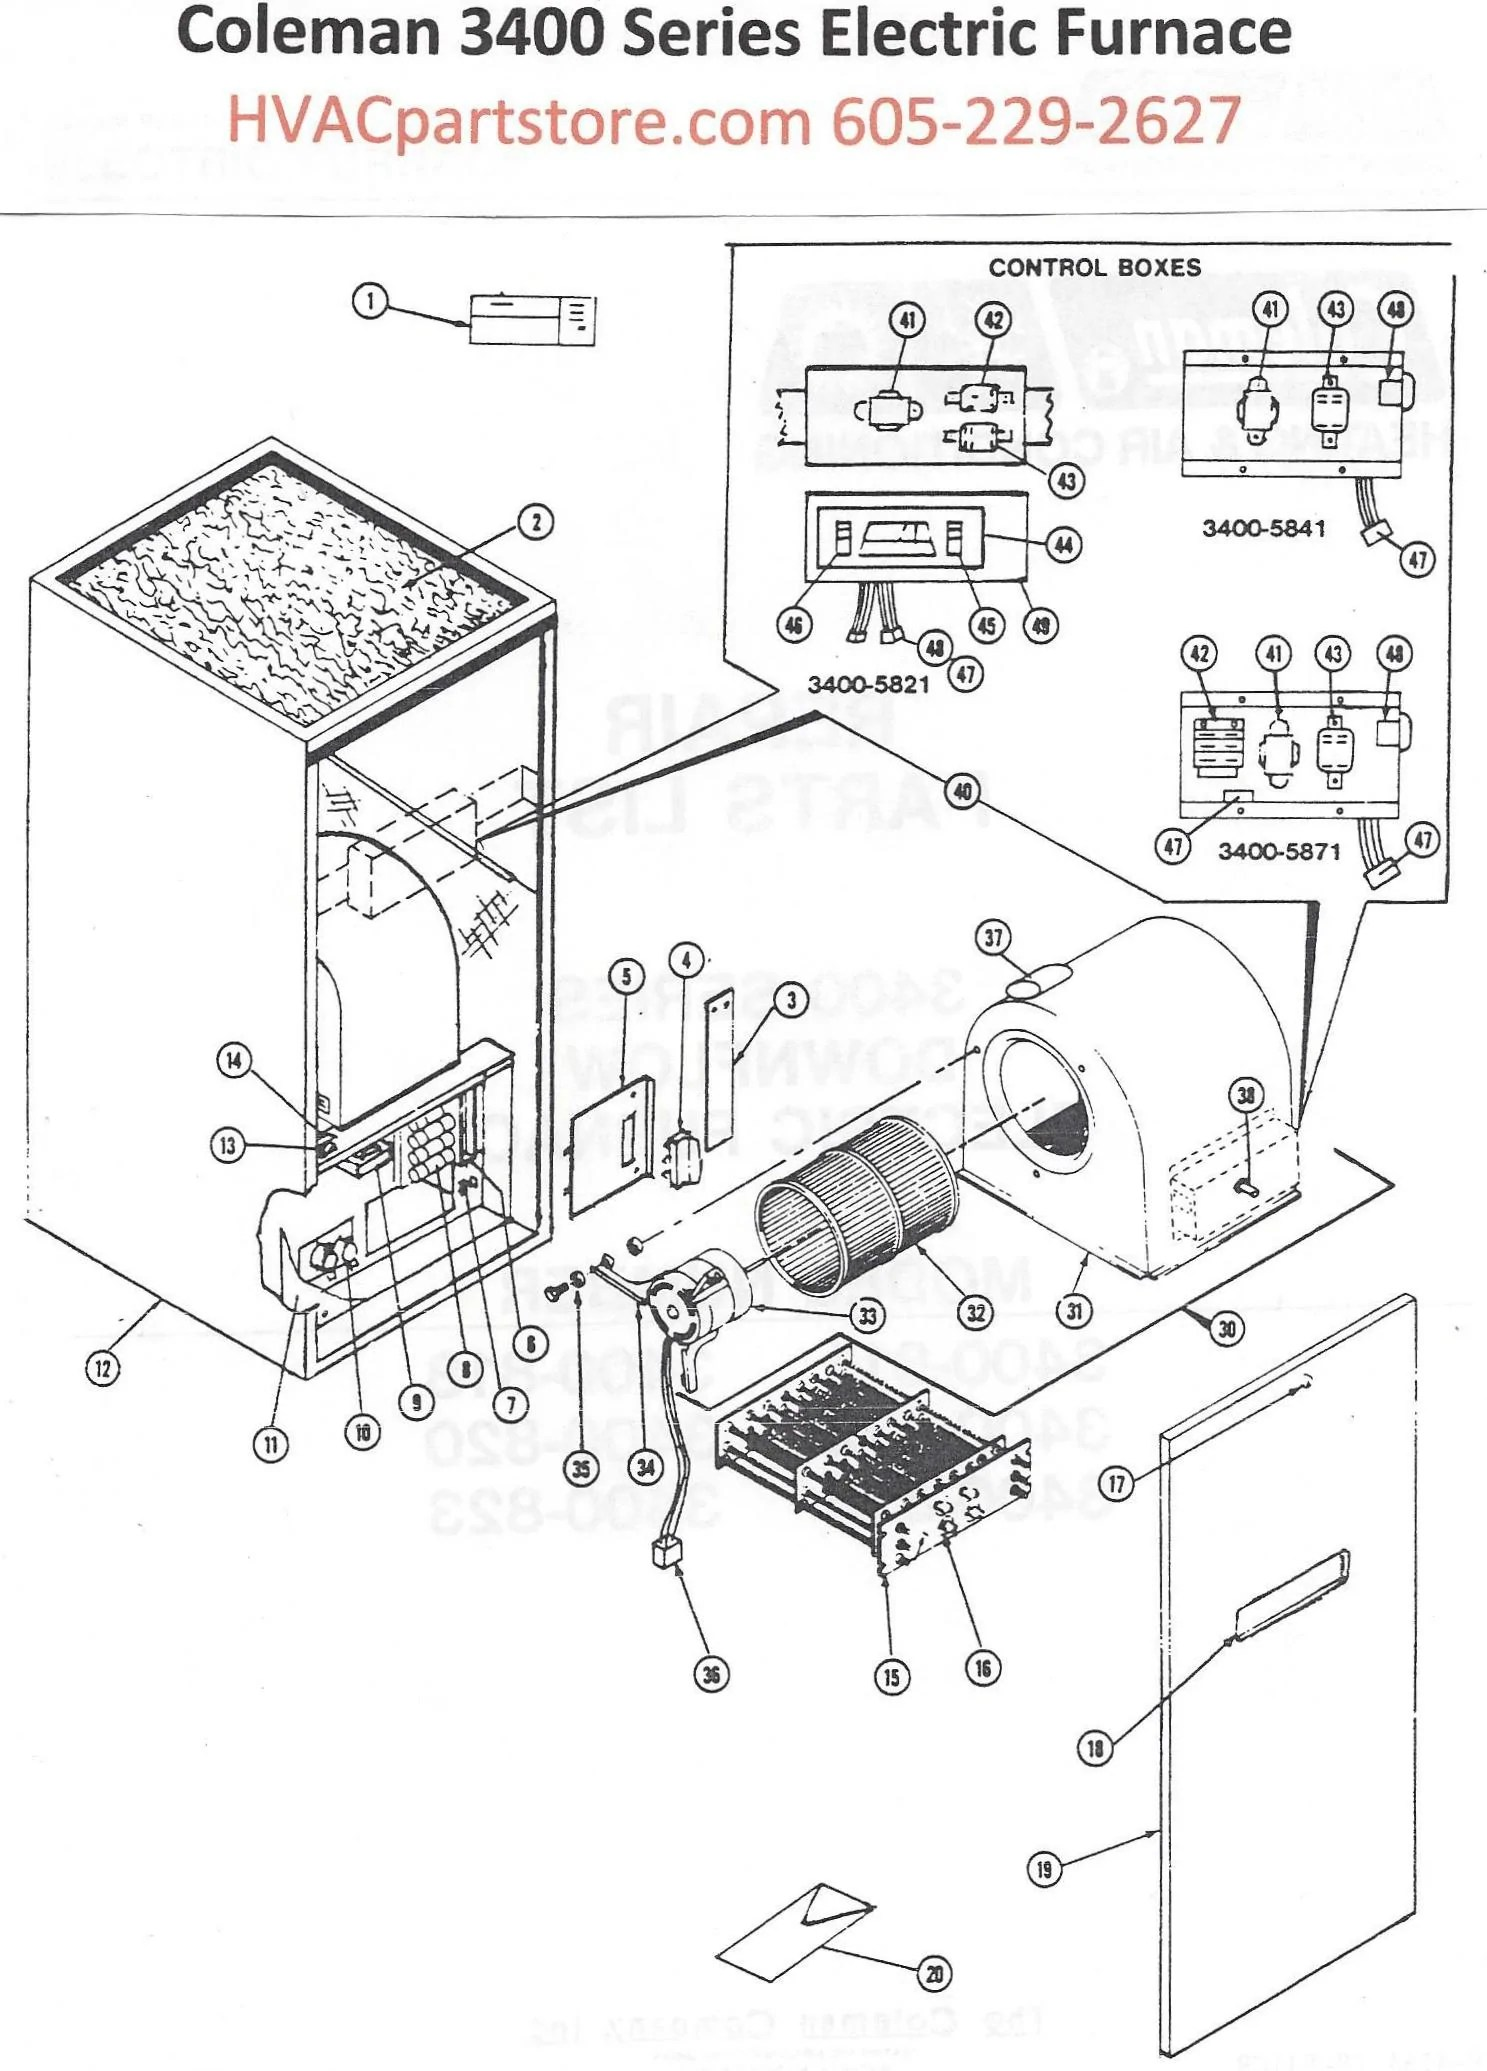 hight resolution of coleman ac heater wiring diagram 3400 wiring diagram third level3400 815 coleman electric furnace parts hvacpartstore